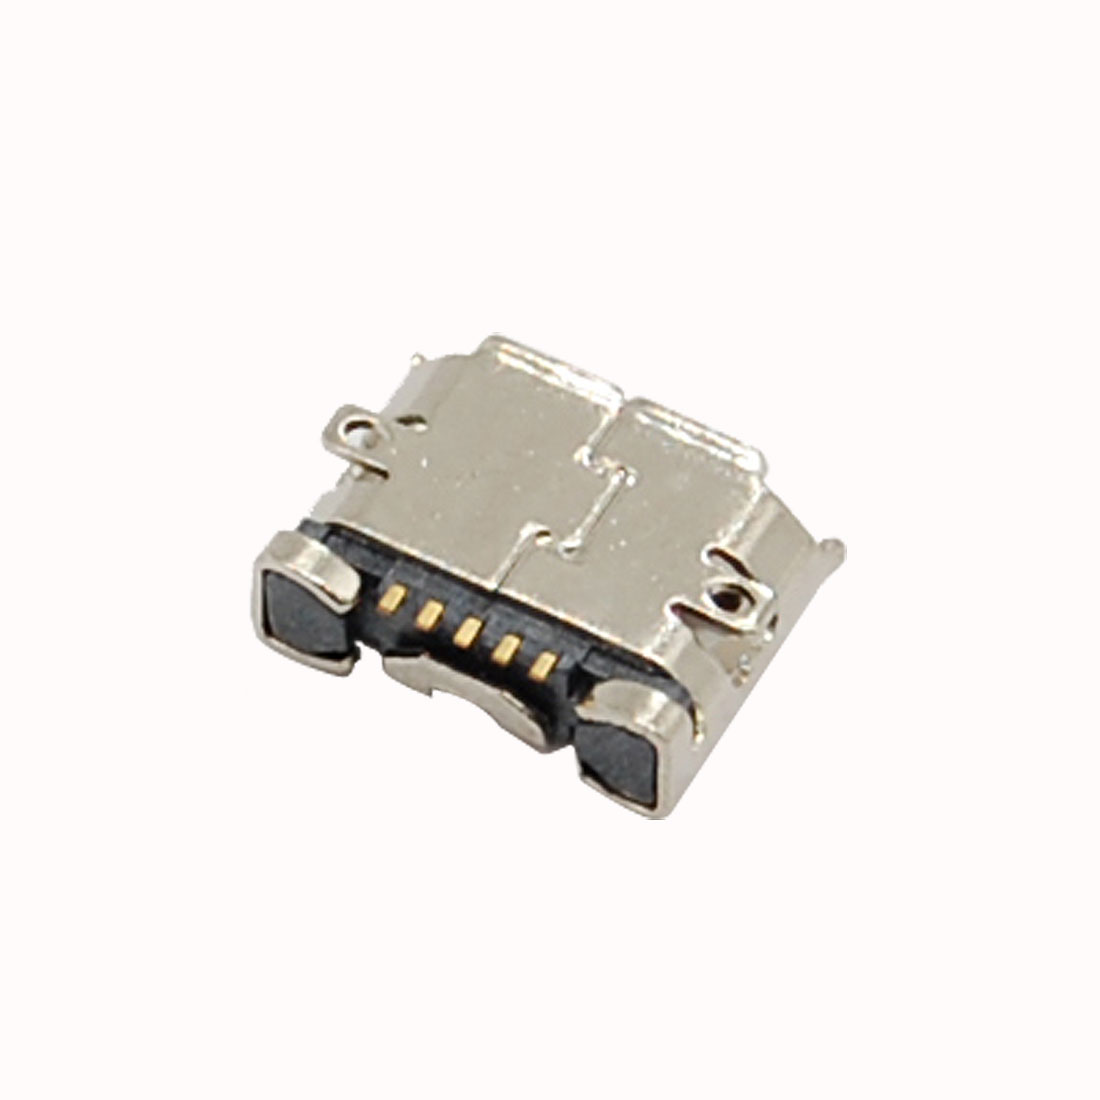 Replacement Data Port Connector for Nokia 5610 8600